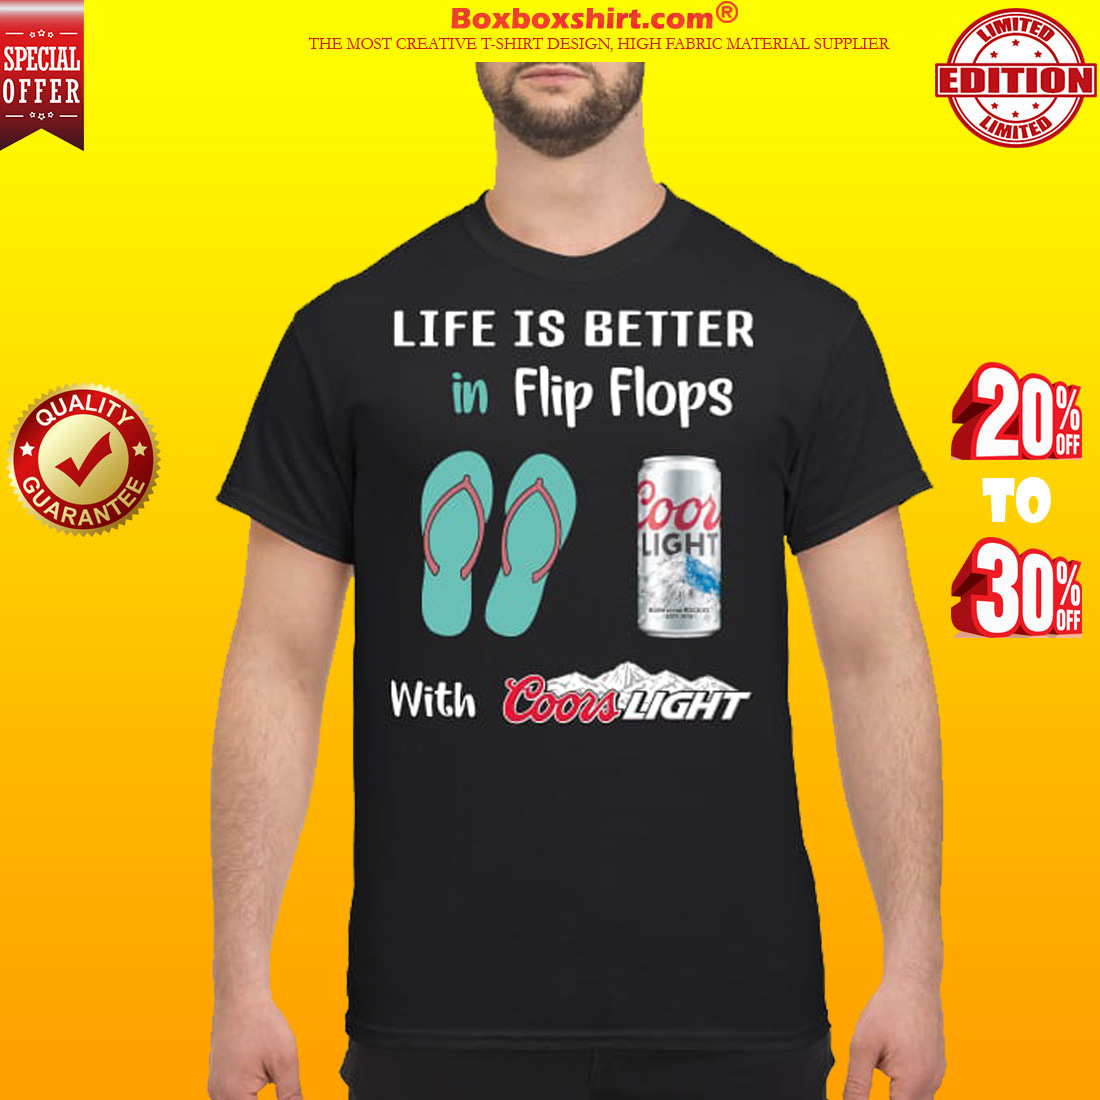 Life is better in flip flops with Coors light classic shirt